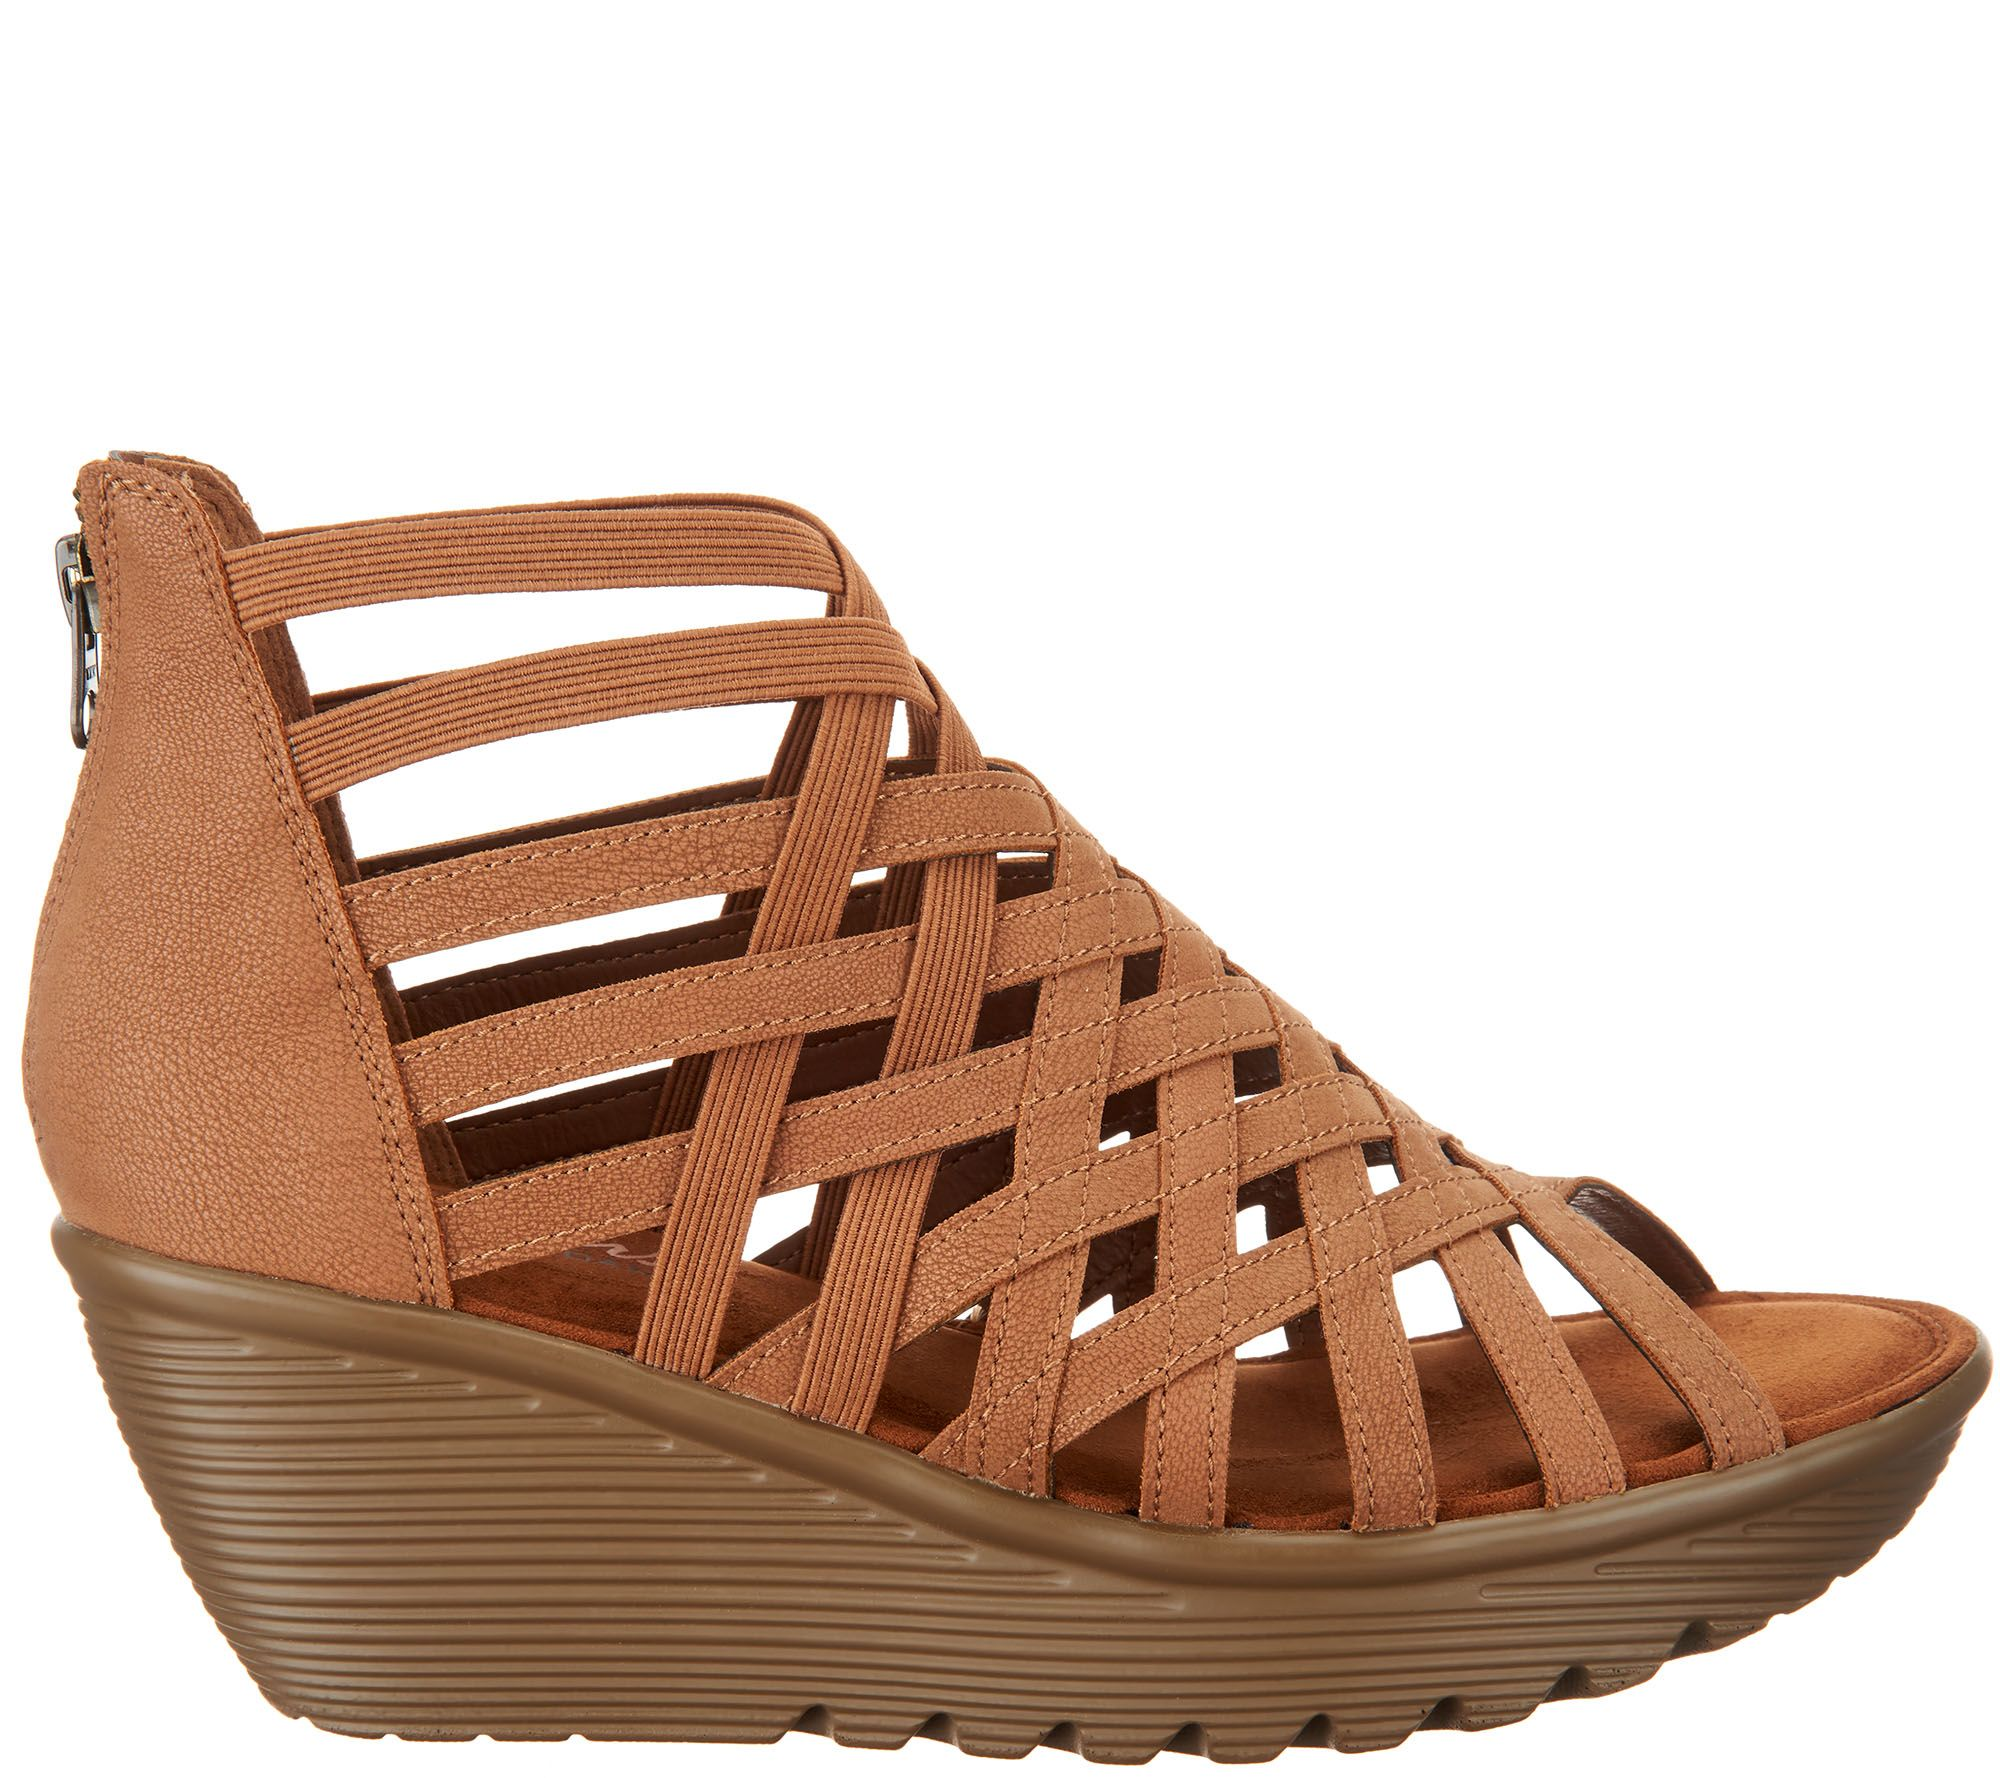 6434143448 Skechers Peep-Toe Caged Wedges - Dream Queen - Page 1 — QVC.com